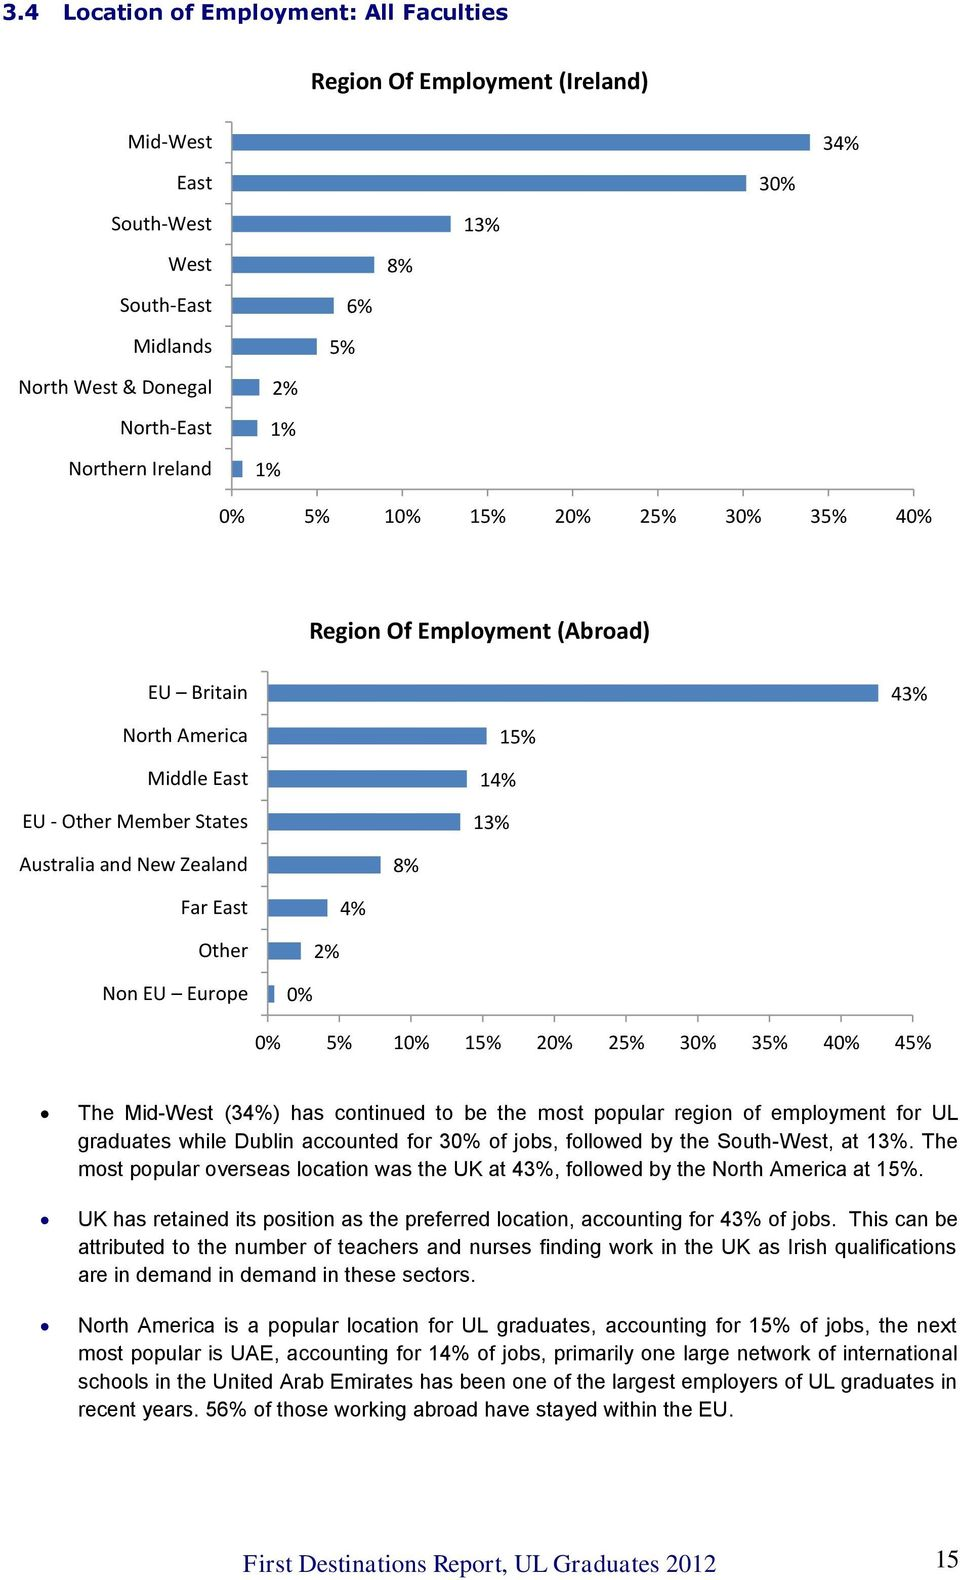 EU Europe 0% 0% 5% 10% 15% 20% 25% 30% 35% 40% 45% The Mid-West (34%) has continued to be the most popular region of employment for UL graduates while Dublin accounted for 30% of jobs, followed by